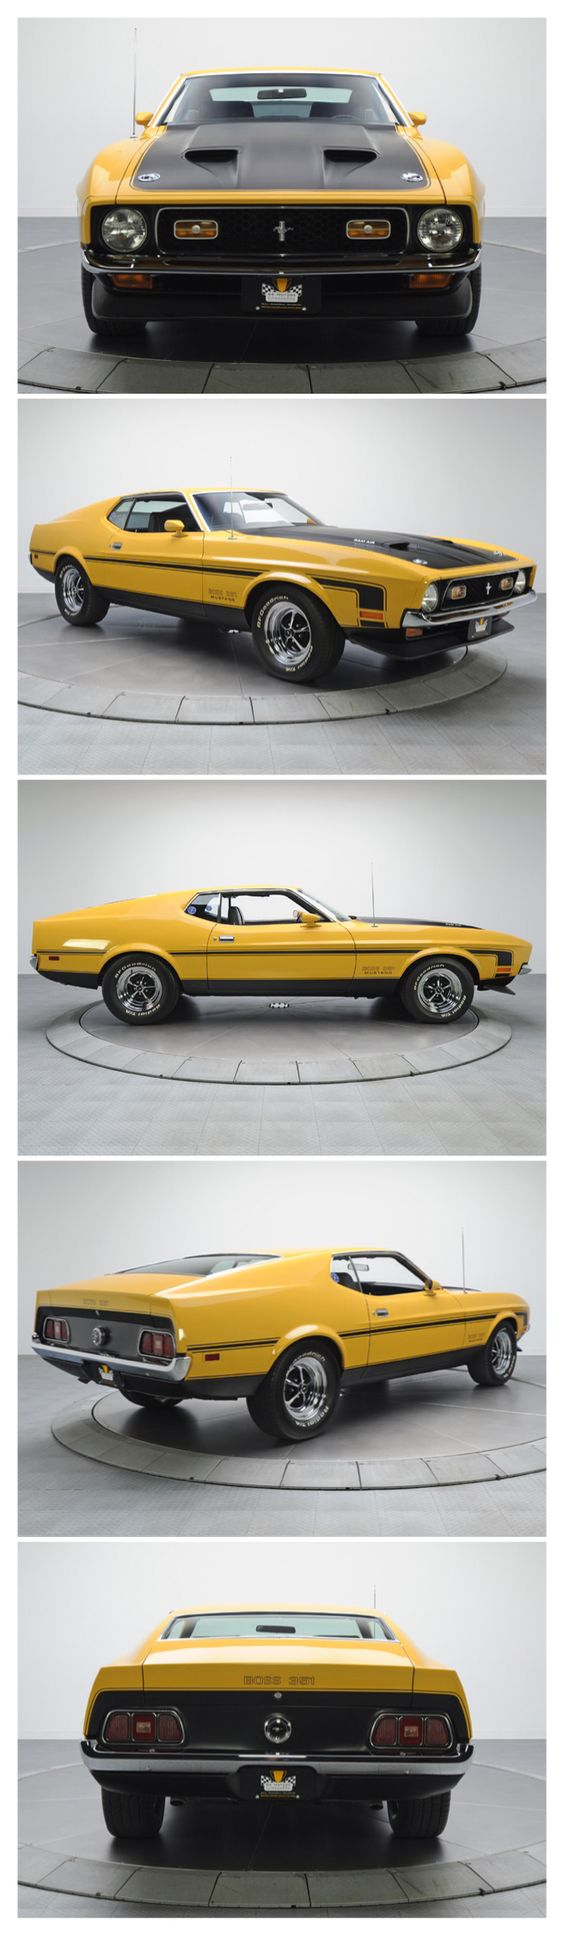 1971 Ford Mustang Boss Visit http://www.holmestuttle.com/..Brought to you by #HouseofInsurance #NeedcarInsinEugeneOregon